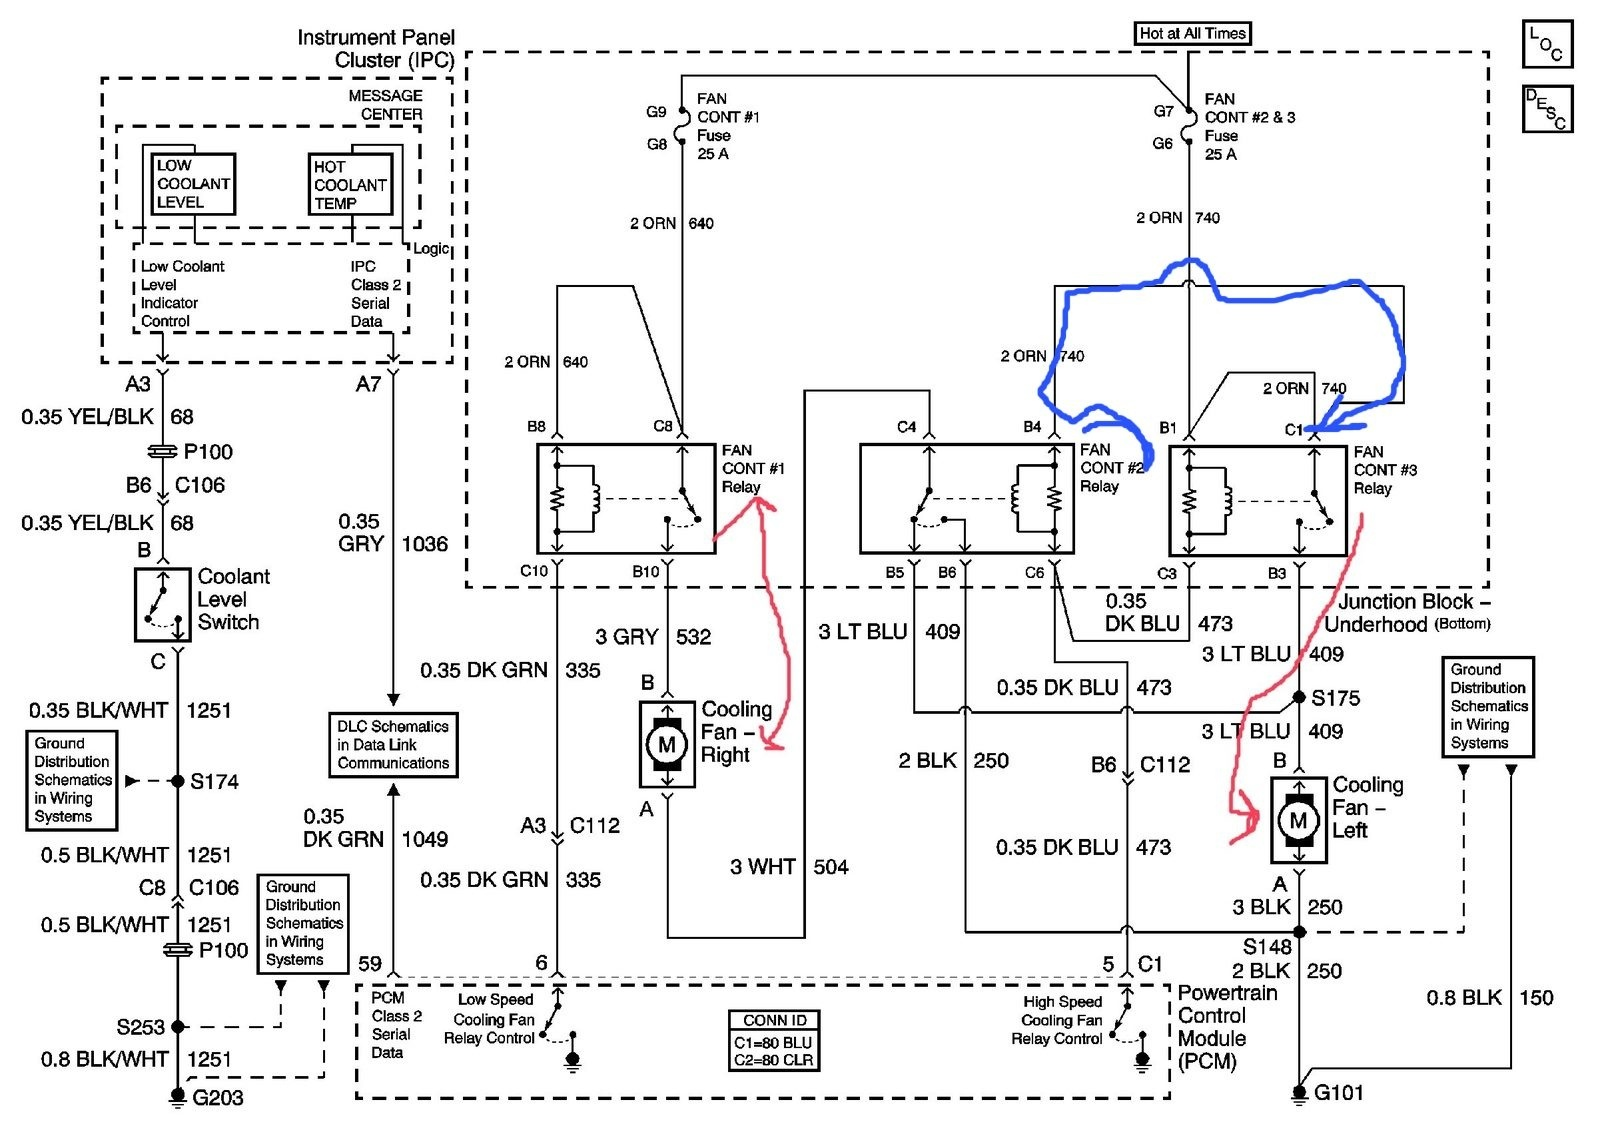 Wiring Diagram 2009 Chevy Impala Ltz - Wiring Diagram replace  versed-recession - versed-recession.hotelemanuelarimini.it | 2005 Impala Engine Wiring Diagram |  | Hotel Emanuela